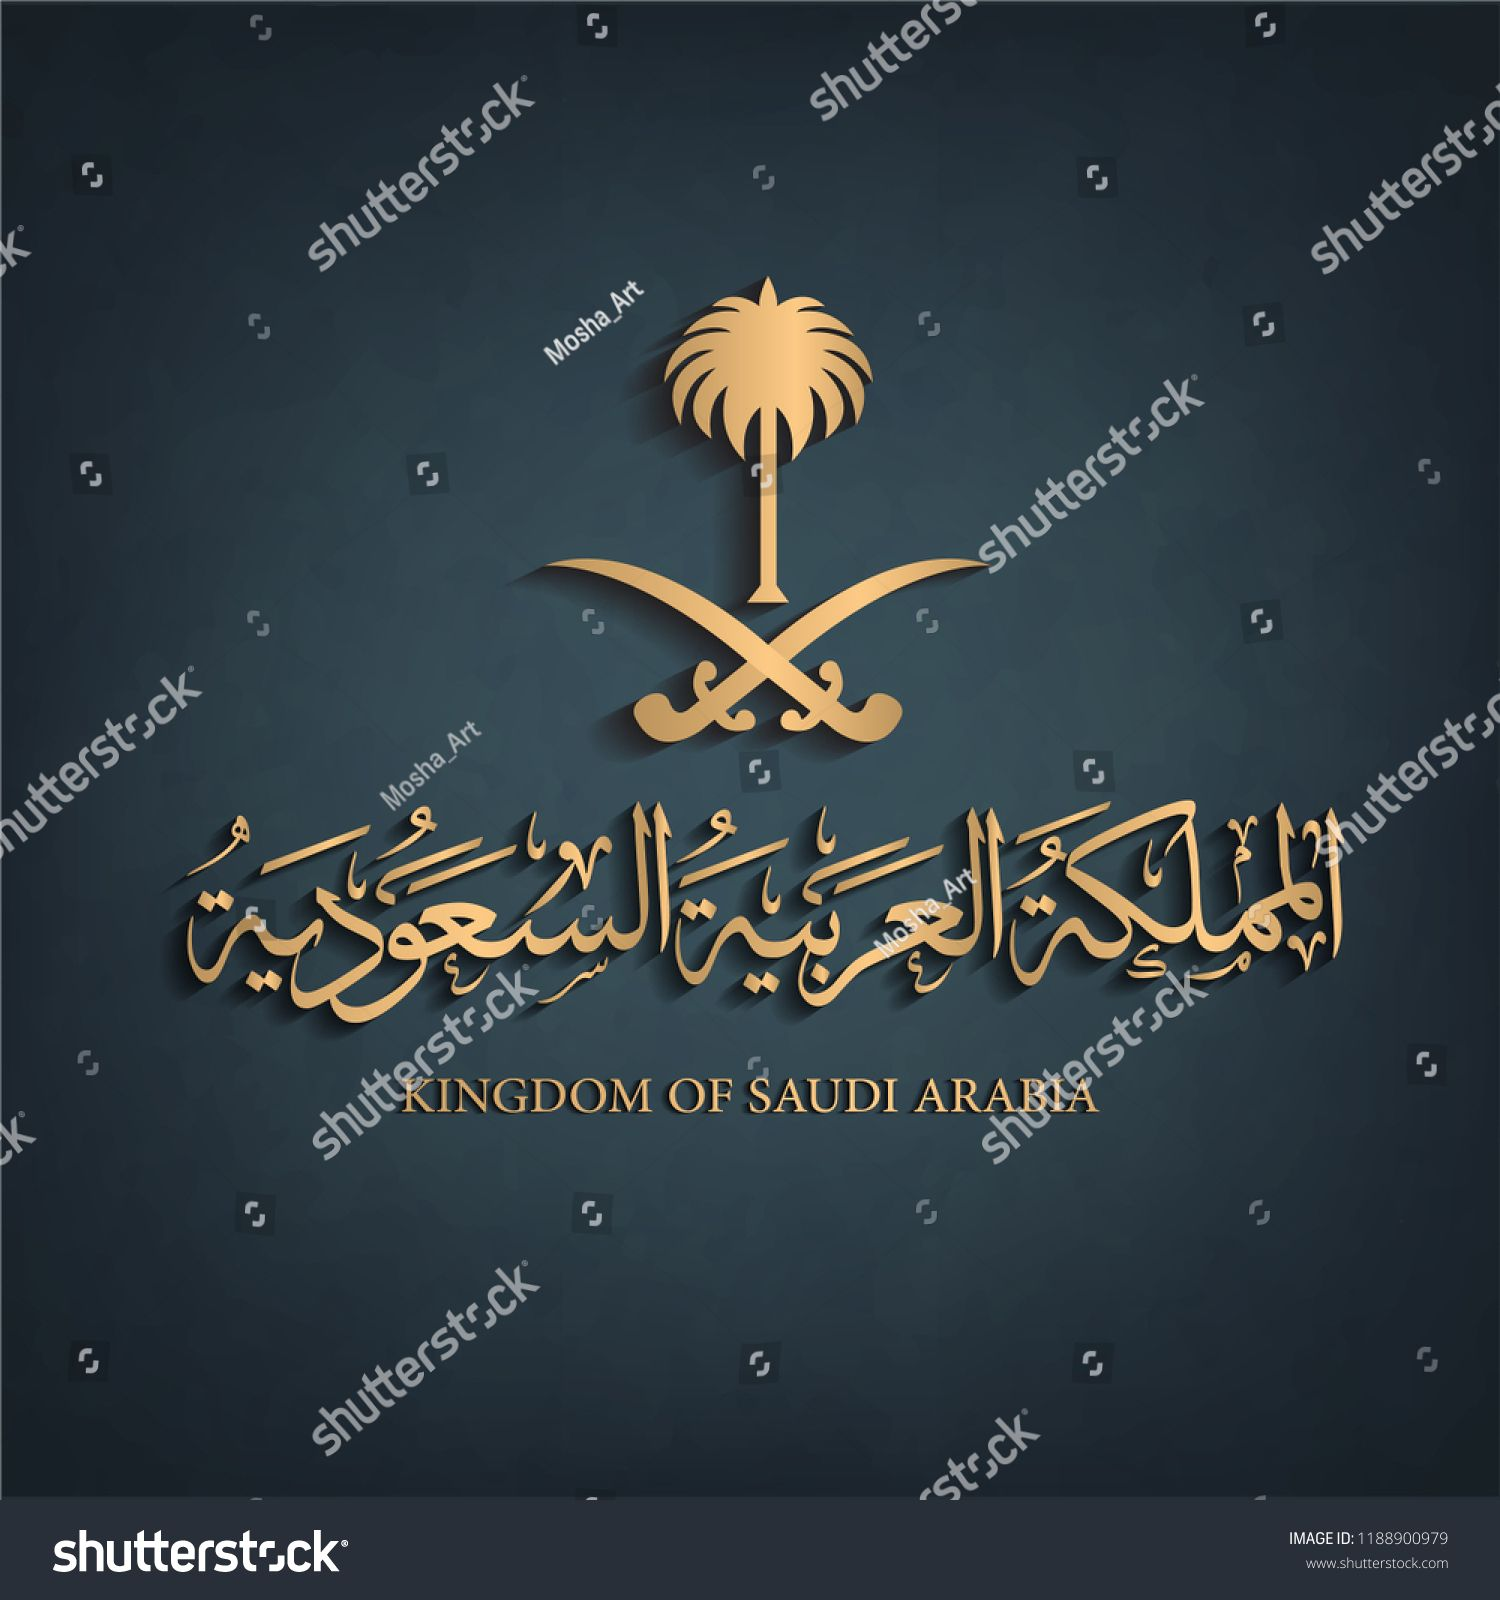 Arabic Calligraphy Kingdom Of Saudi Arabia Text Or Arabic Font In Thuluth Style For Names Of Arab Instagram Frame Template Saudi Arabia Painting Art Projects